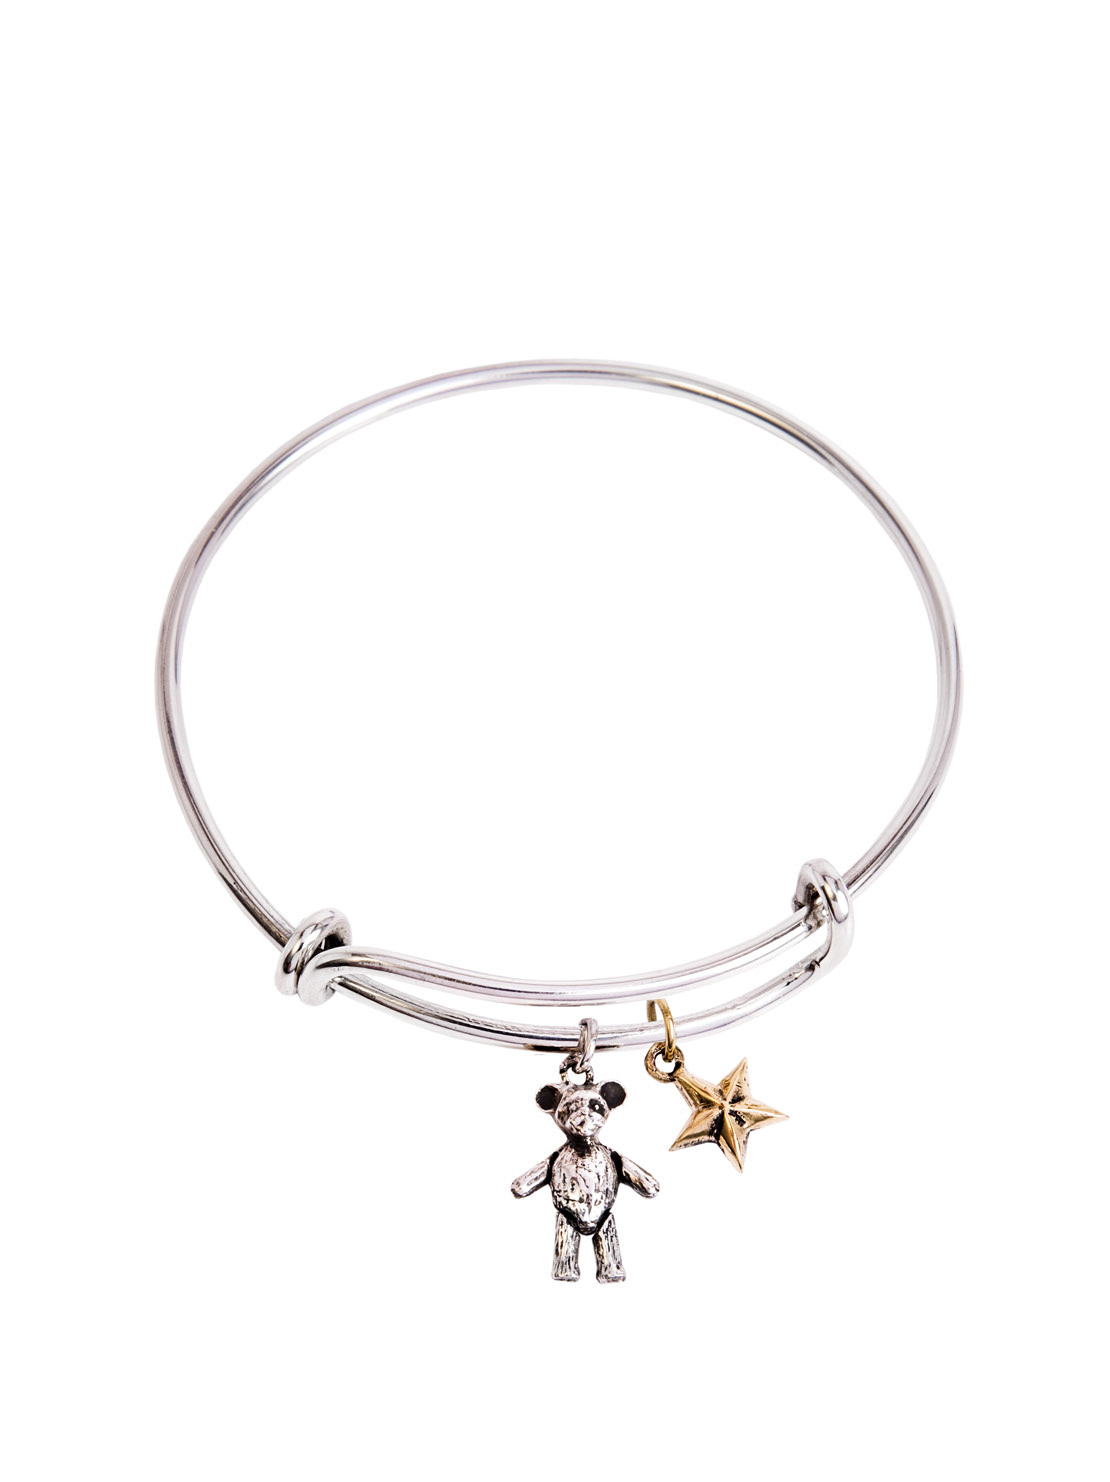 Silver Charm Bangle With Teddy And Star